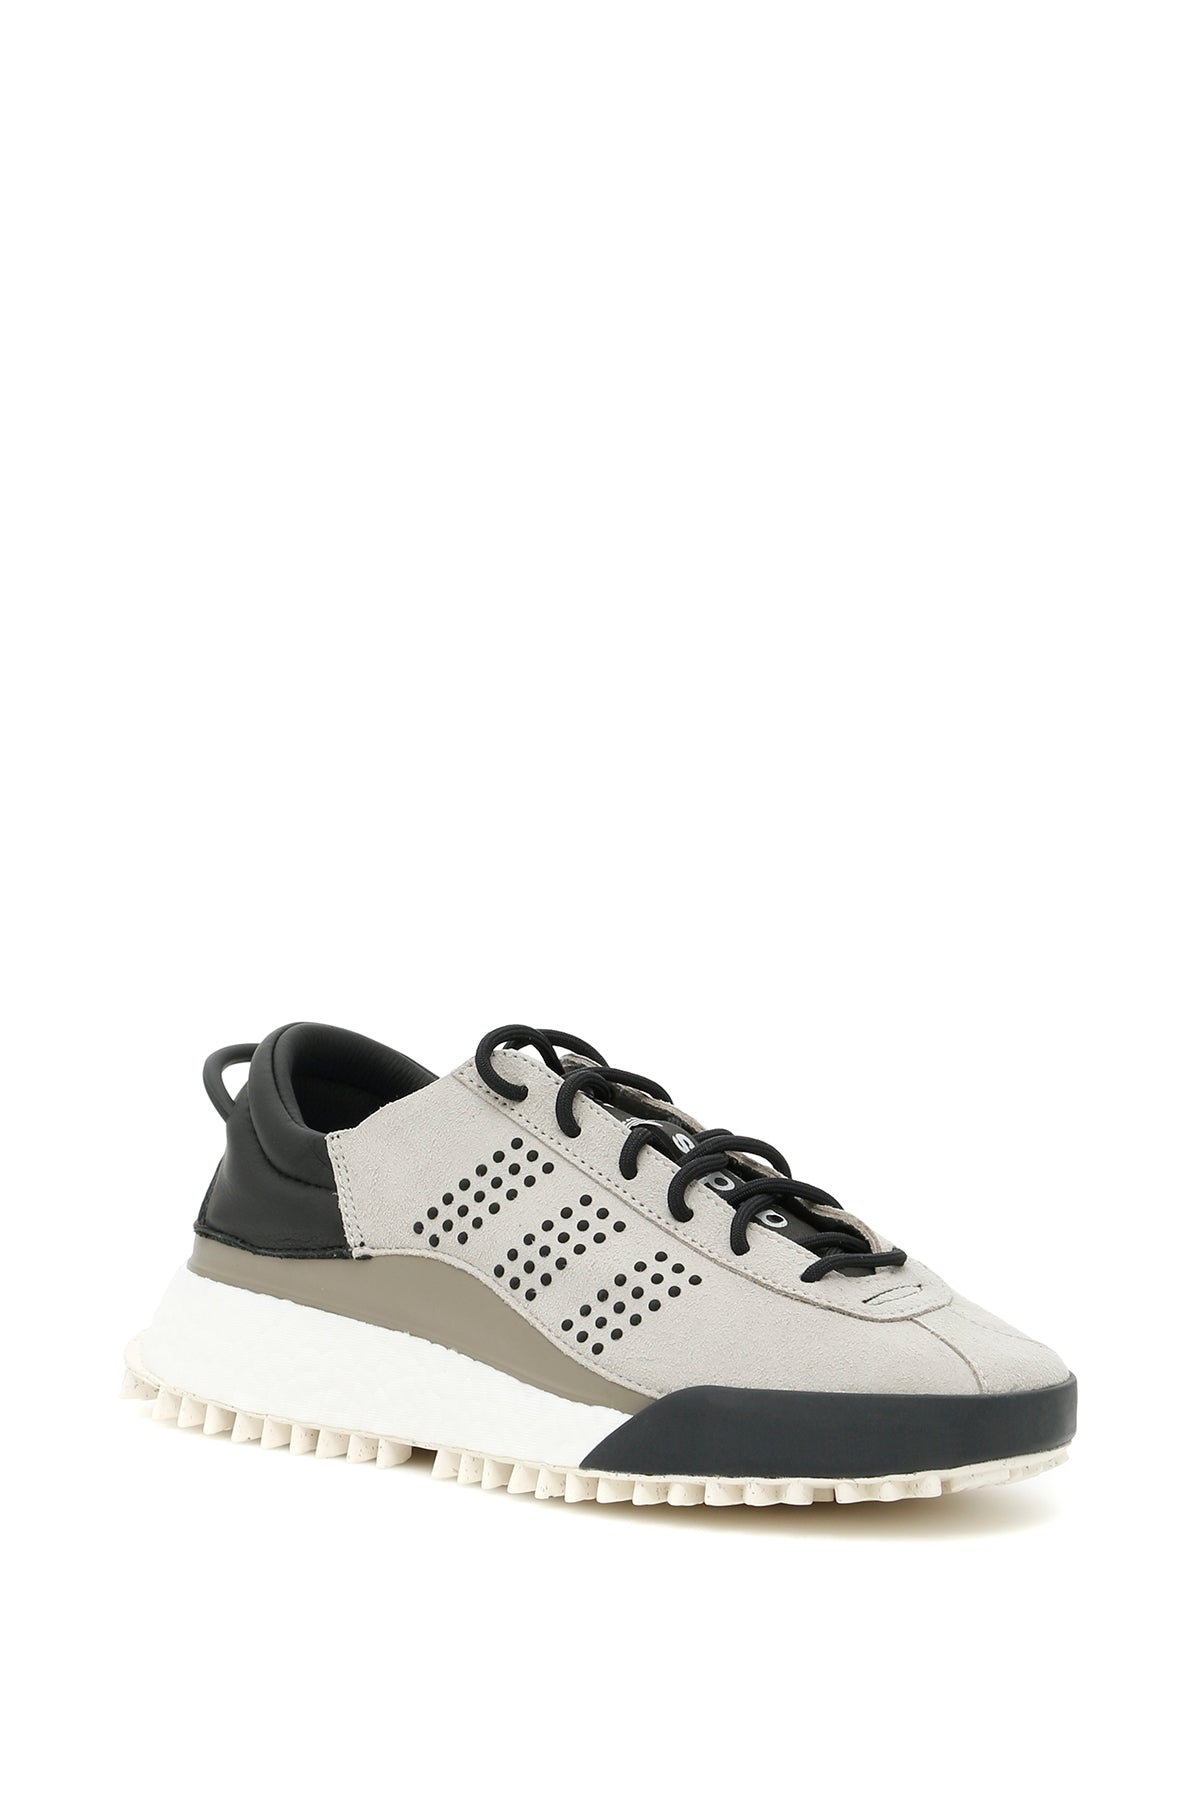 ADIDAS ORIGINALS BY ALEXANDER WANG AW HIKE LO SNEAKERS